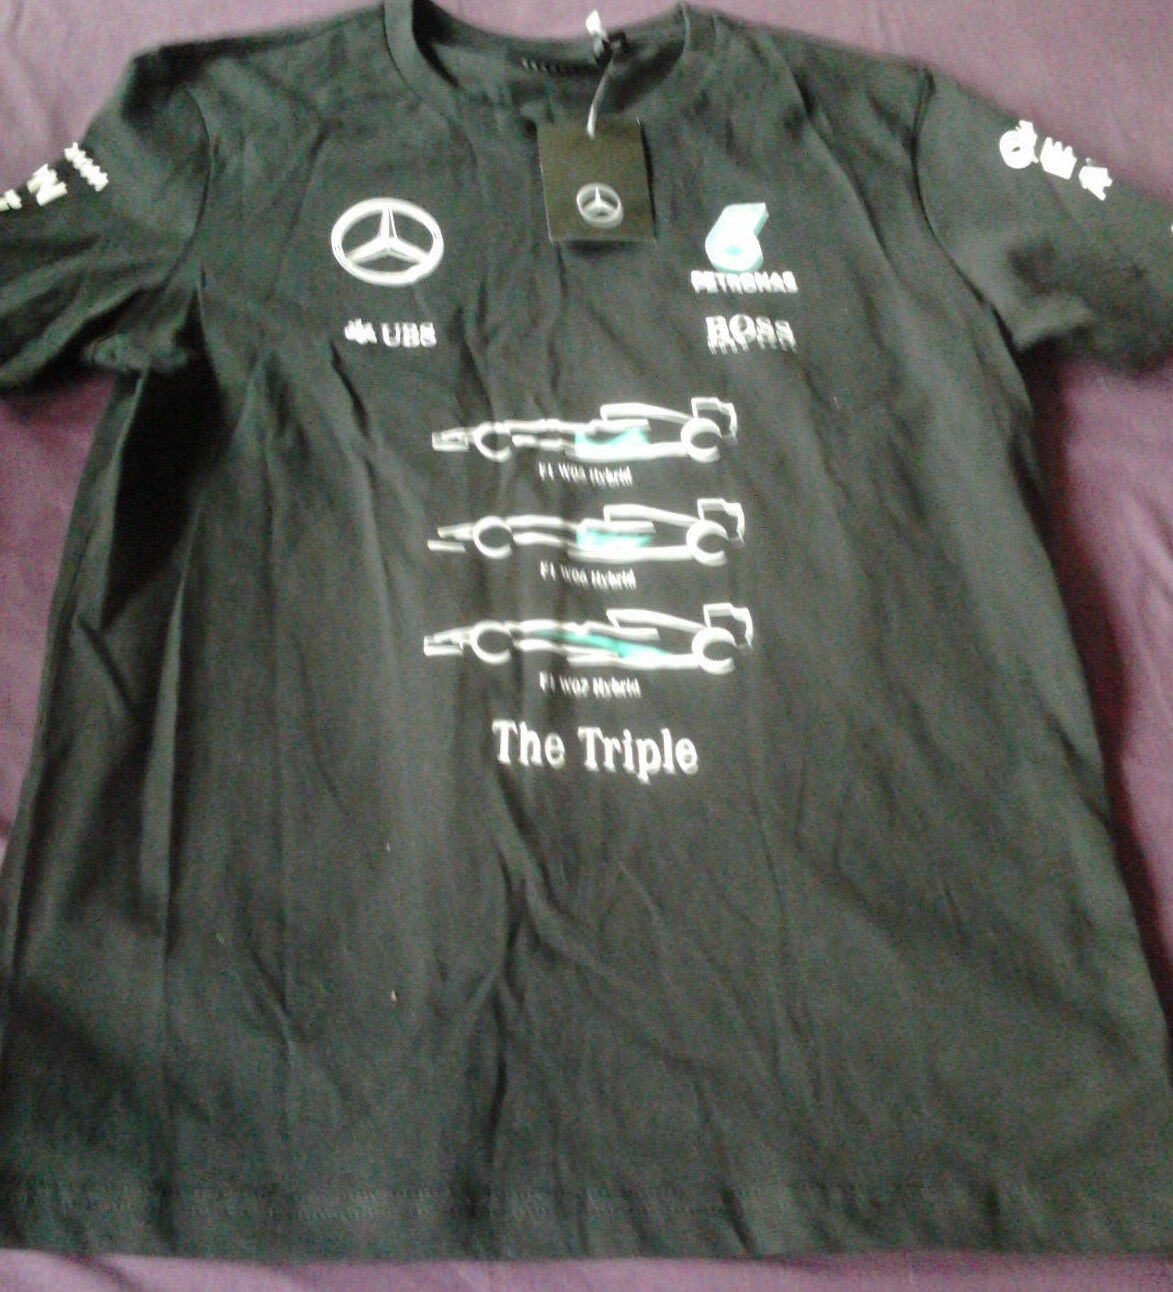 New Mercedes Benz collection F1 Championship T-shirt (size M)